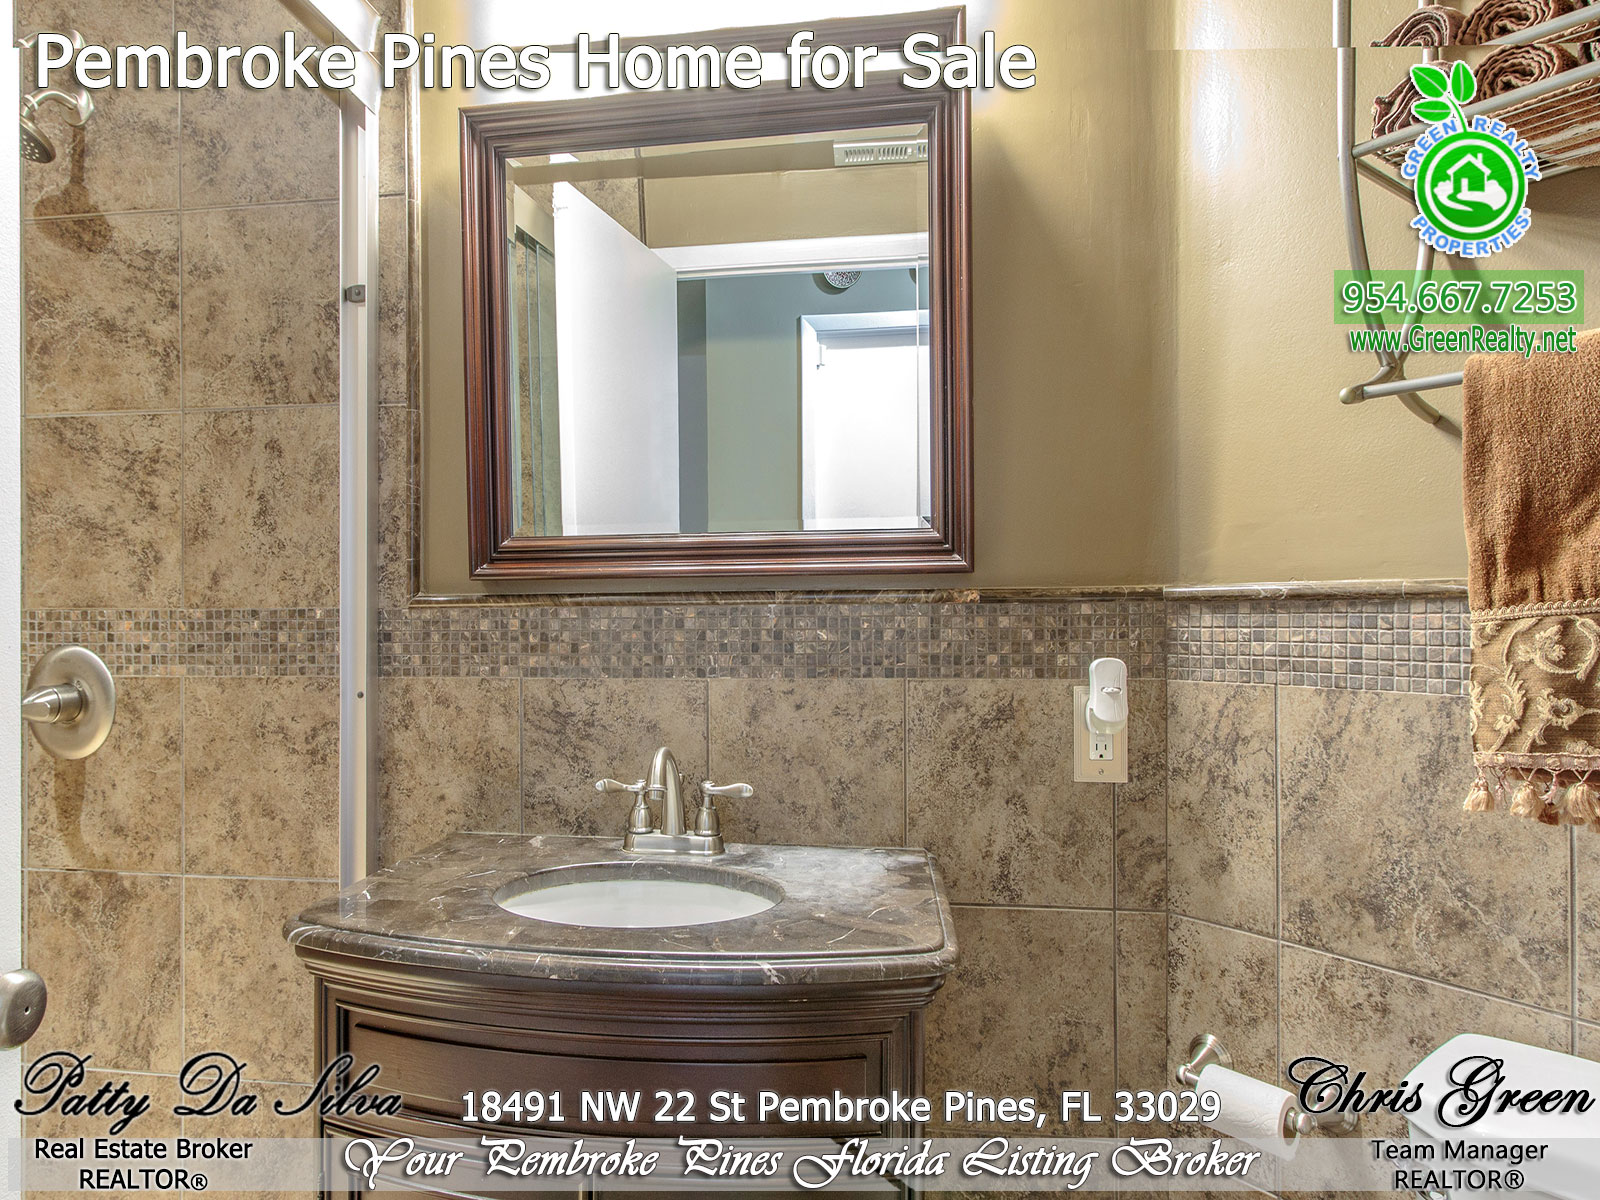 11 Pembroke-Pines-Home-For-Sale-Patty-Da-Silva-Green-Realty